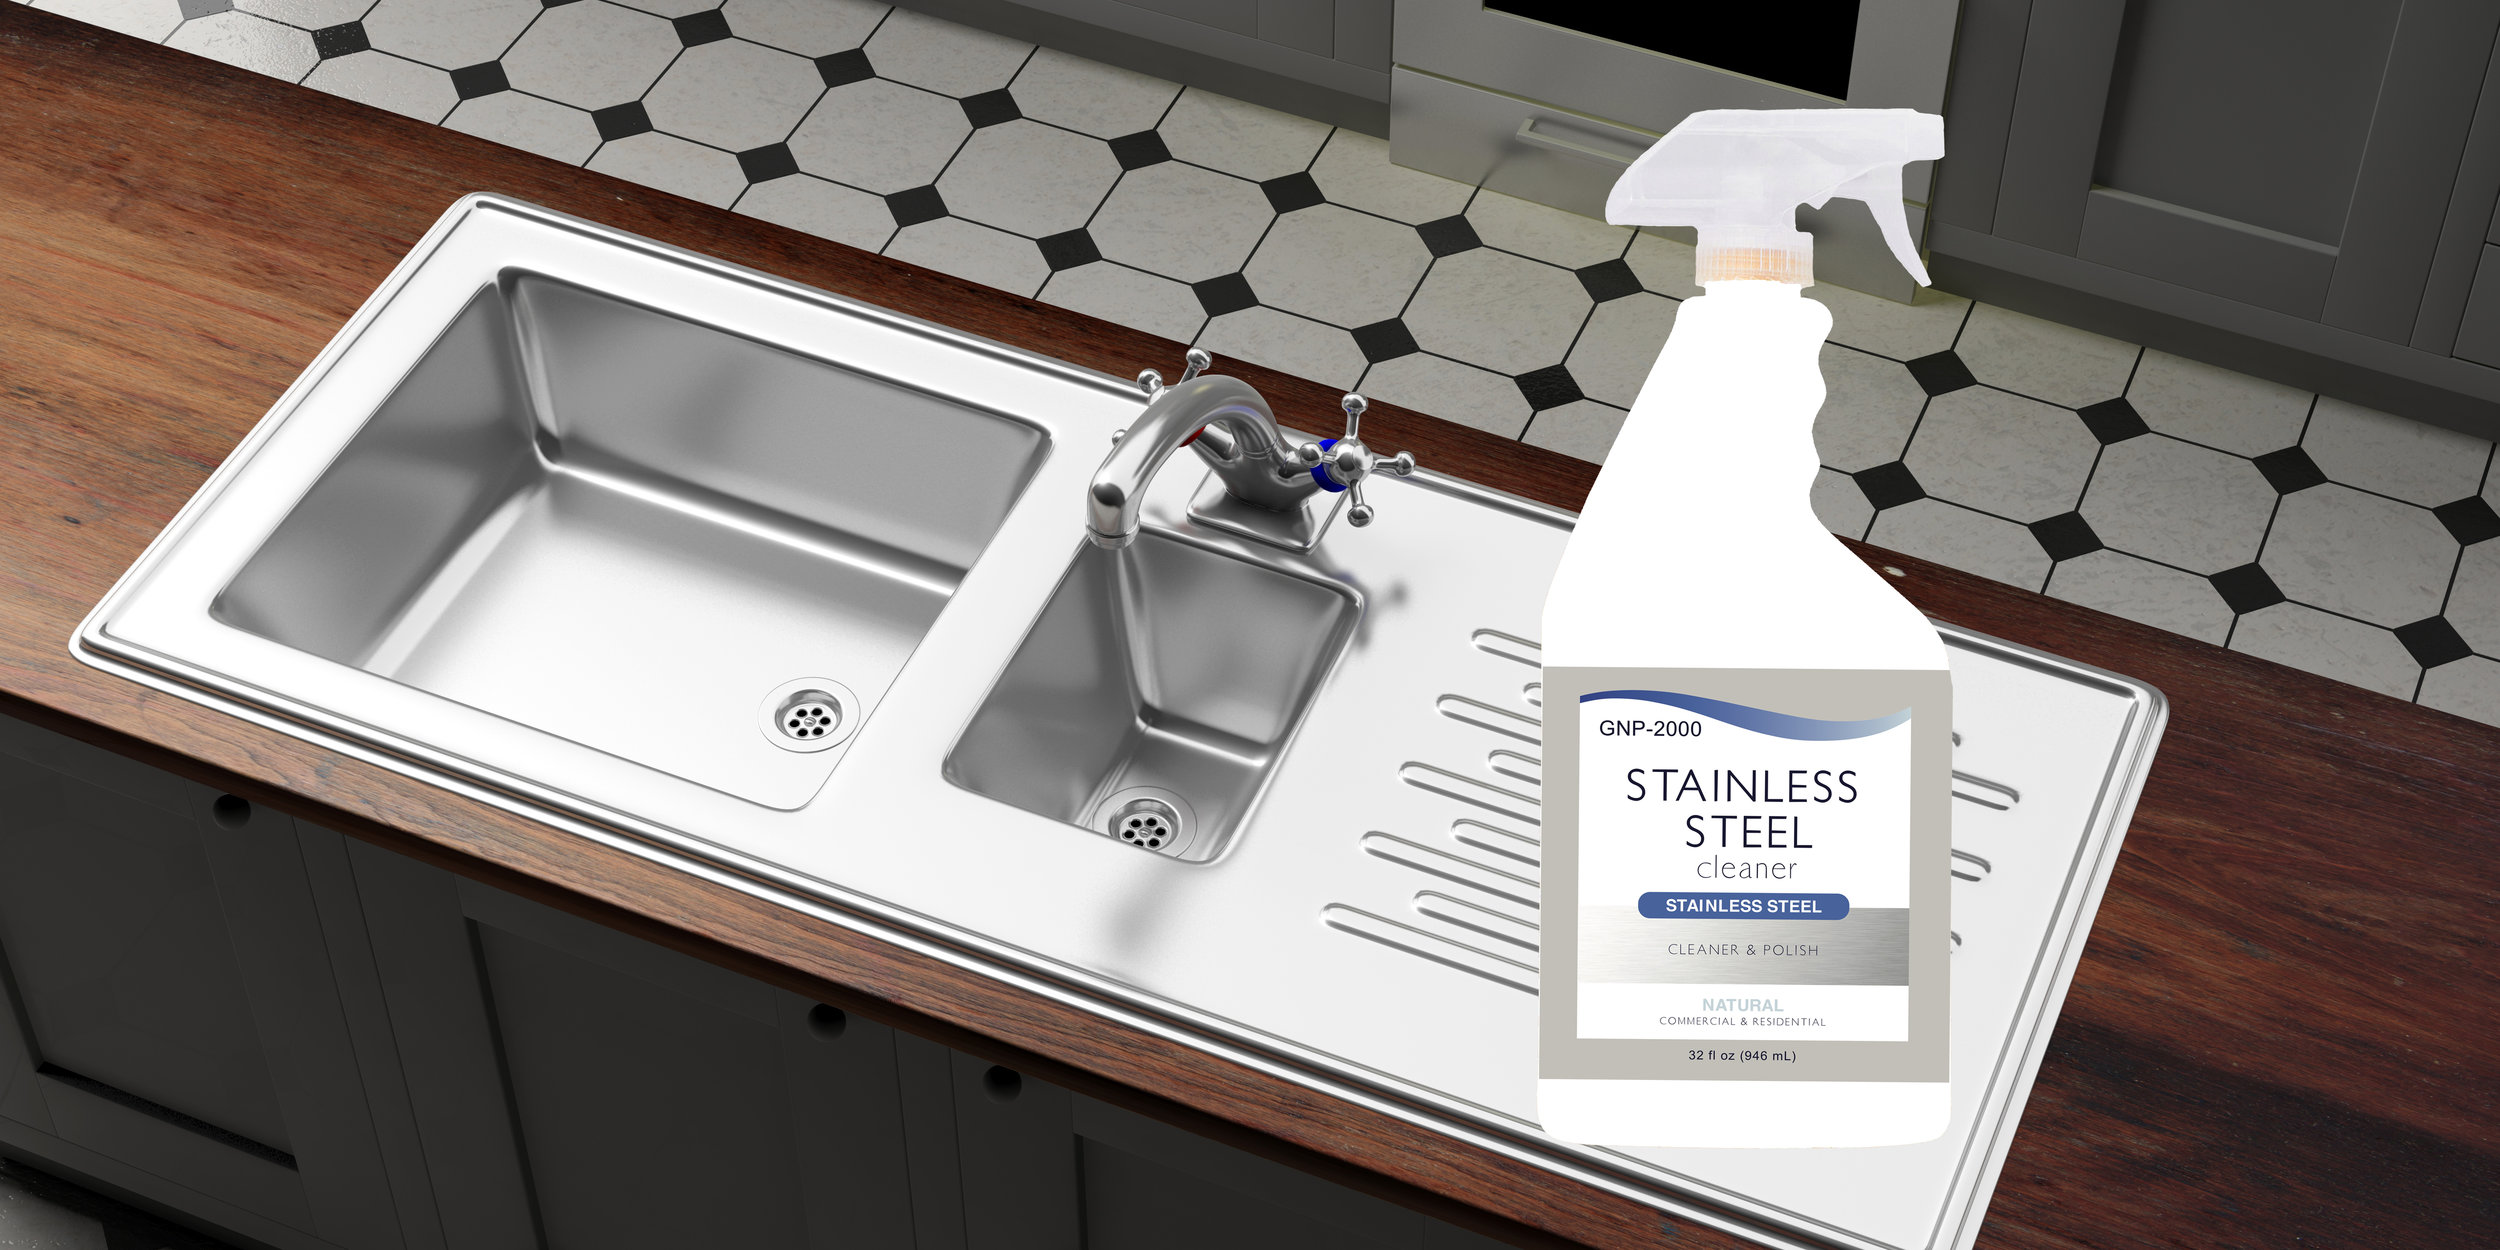 GNP-200 Natural Stainless Steel Cleaner